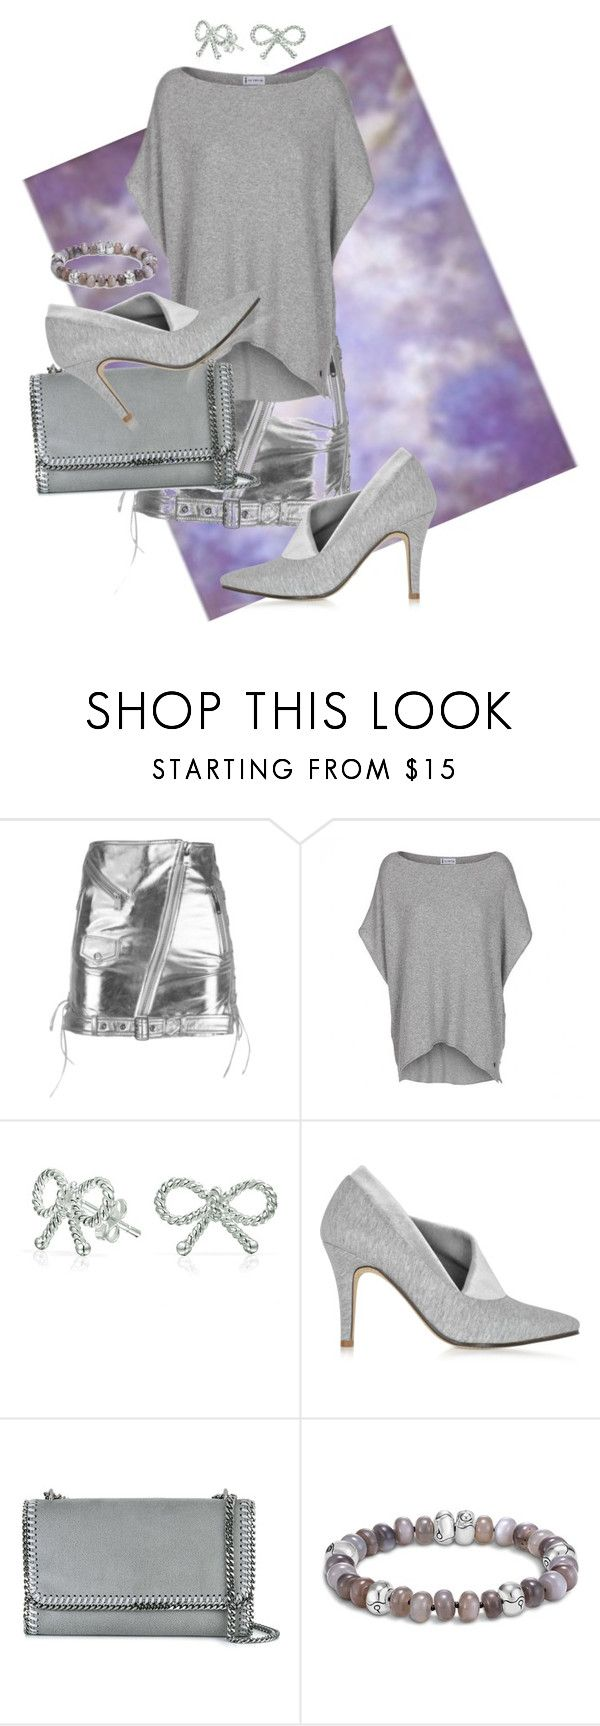 """Shiny Shiny"" by stormysmom on Polyvore featuring Manokhi, Bling Jewelry, Zoe Lee, STELLA McCARTNEY and John Hardy"